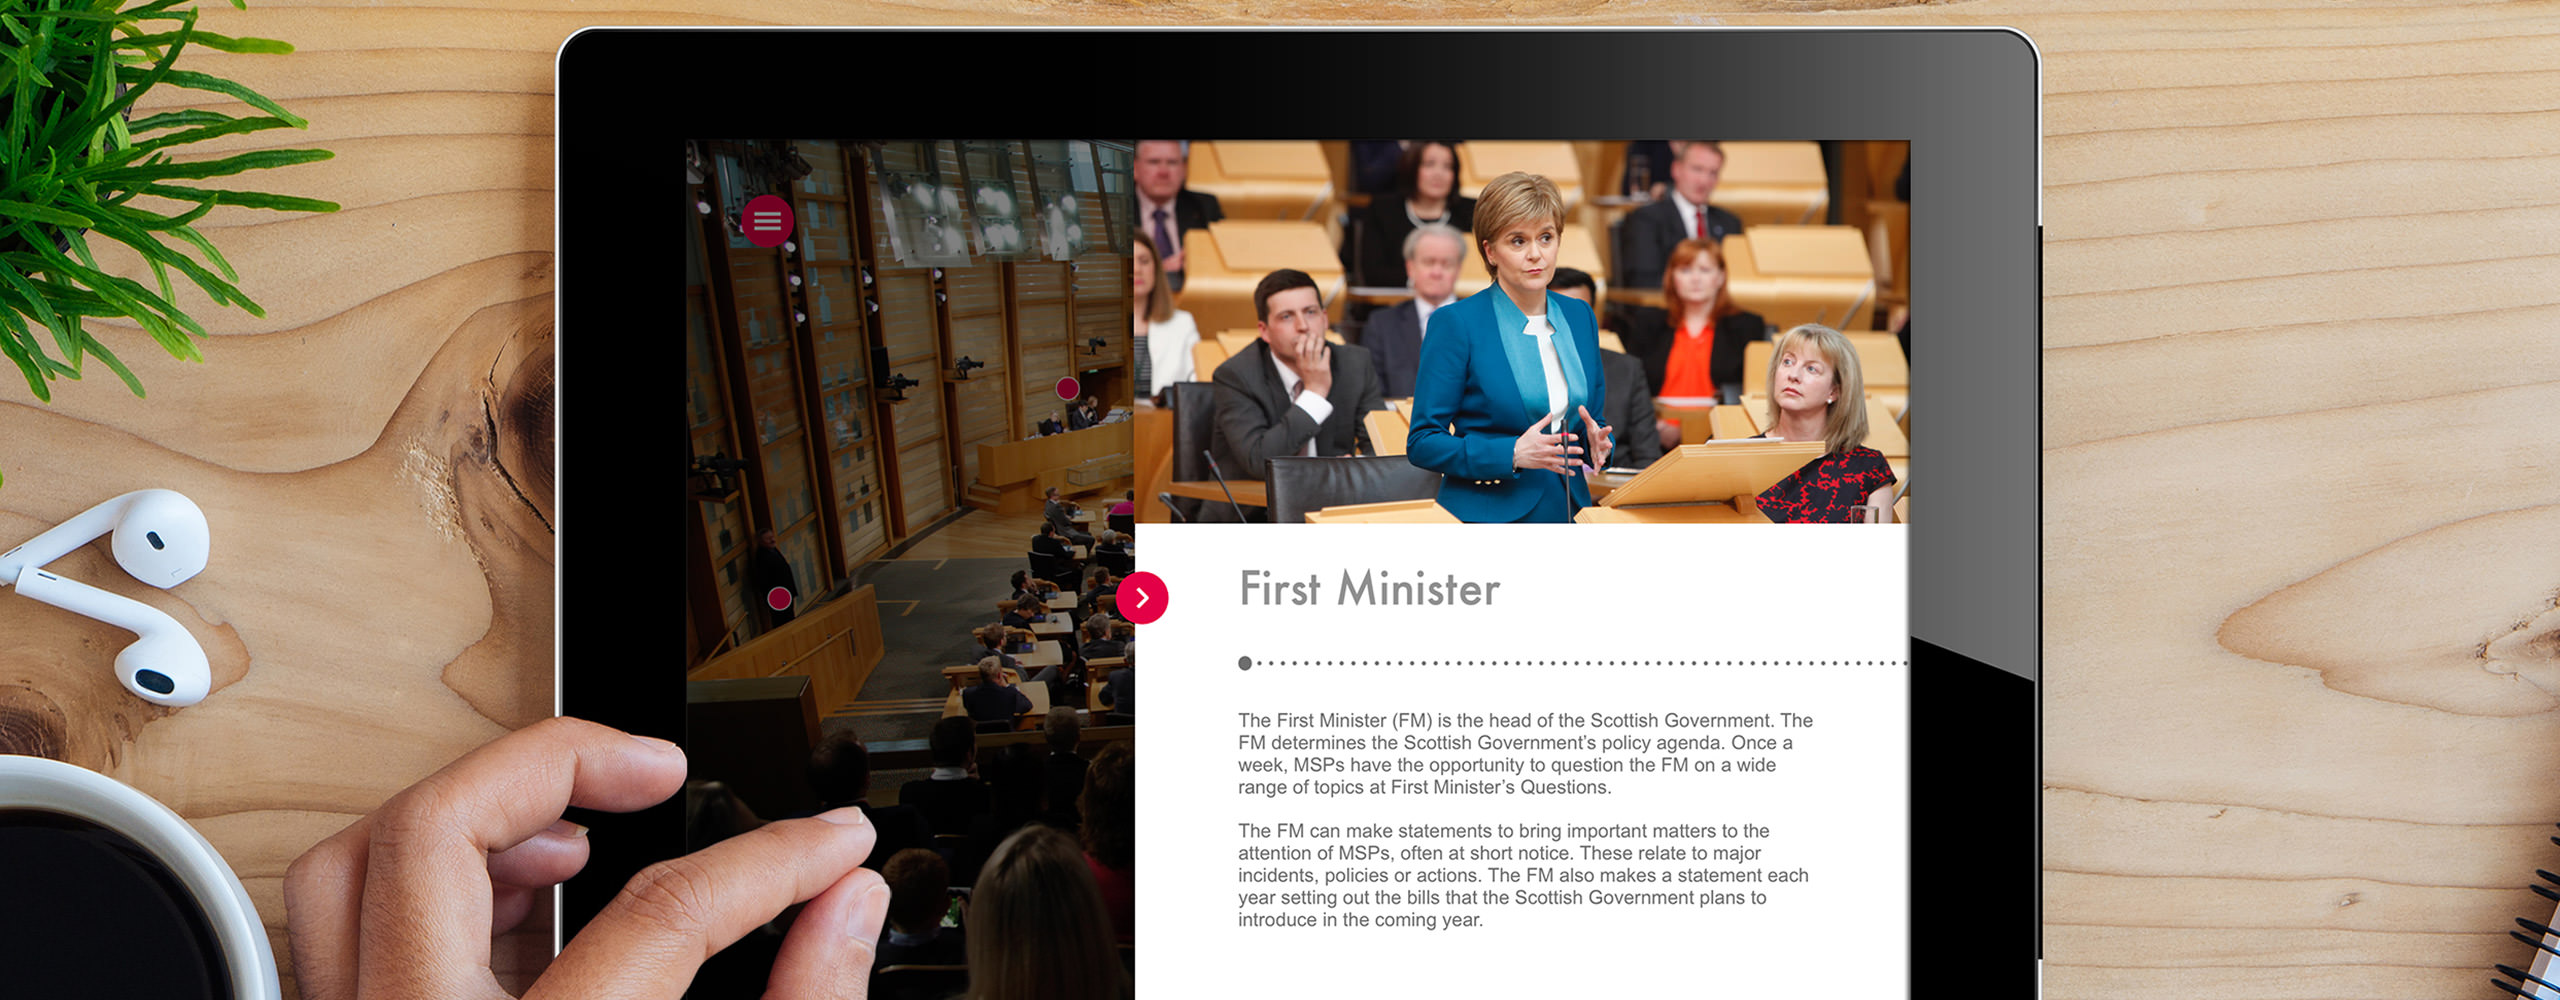 scottish parliament chamber app with first minister on screen